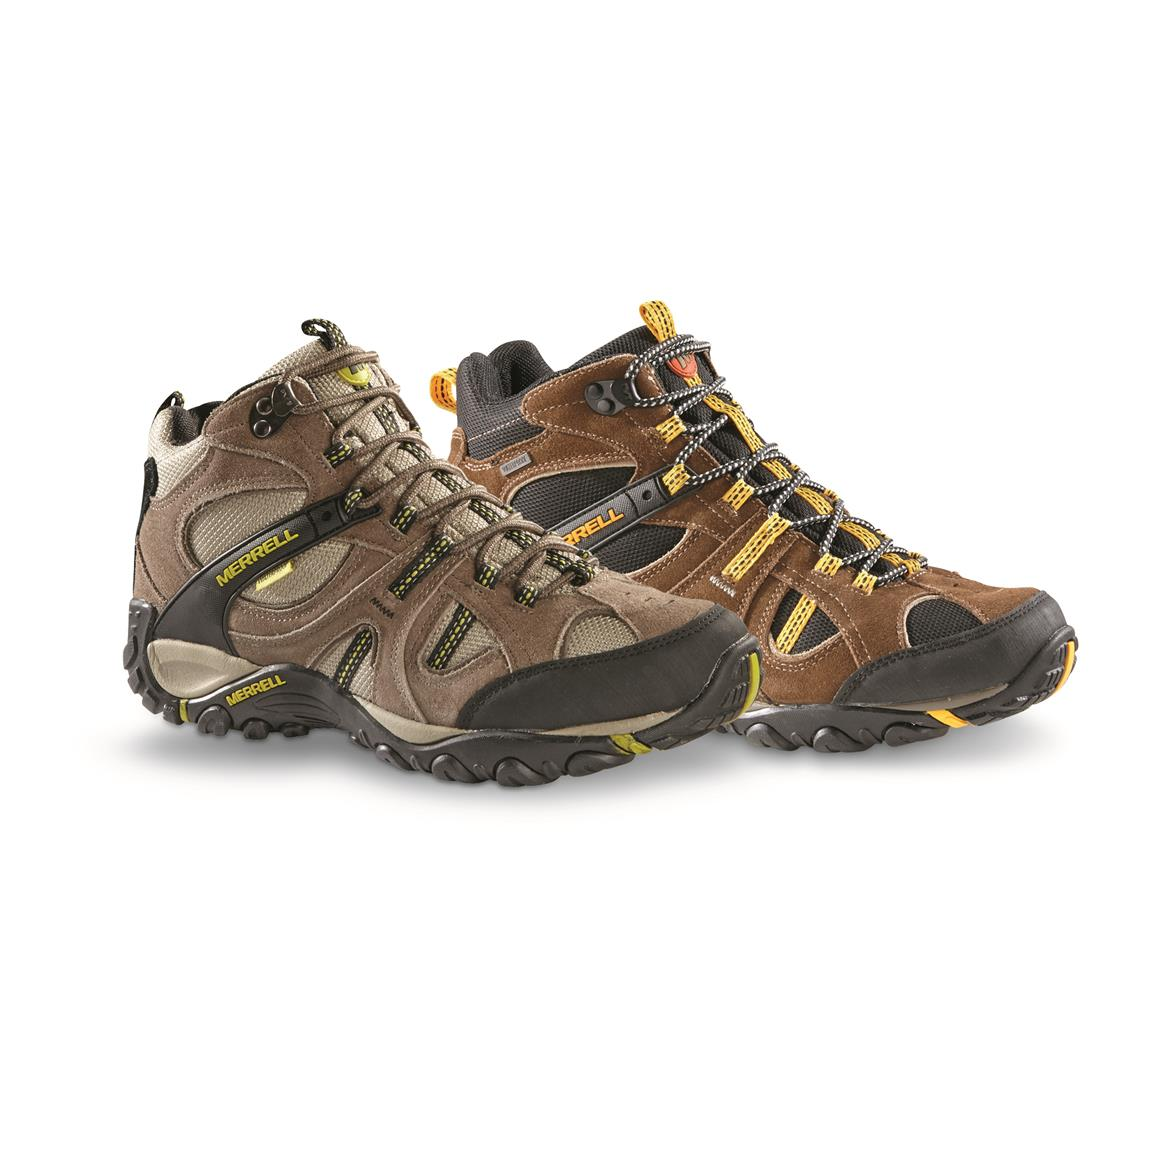 Merrell Men's Yokota Trail Mid Waterproof Hiking Shoes